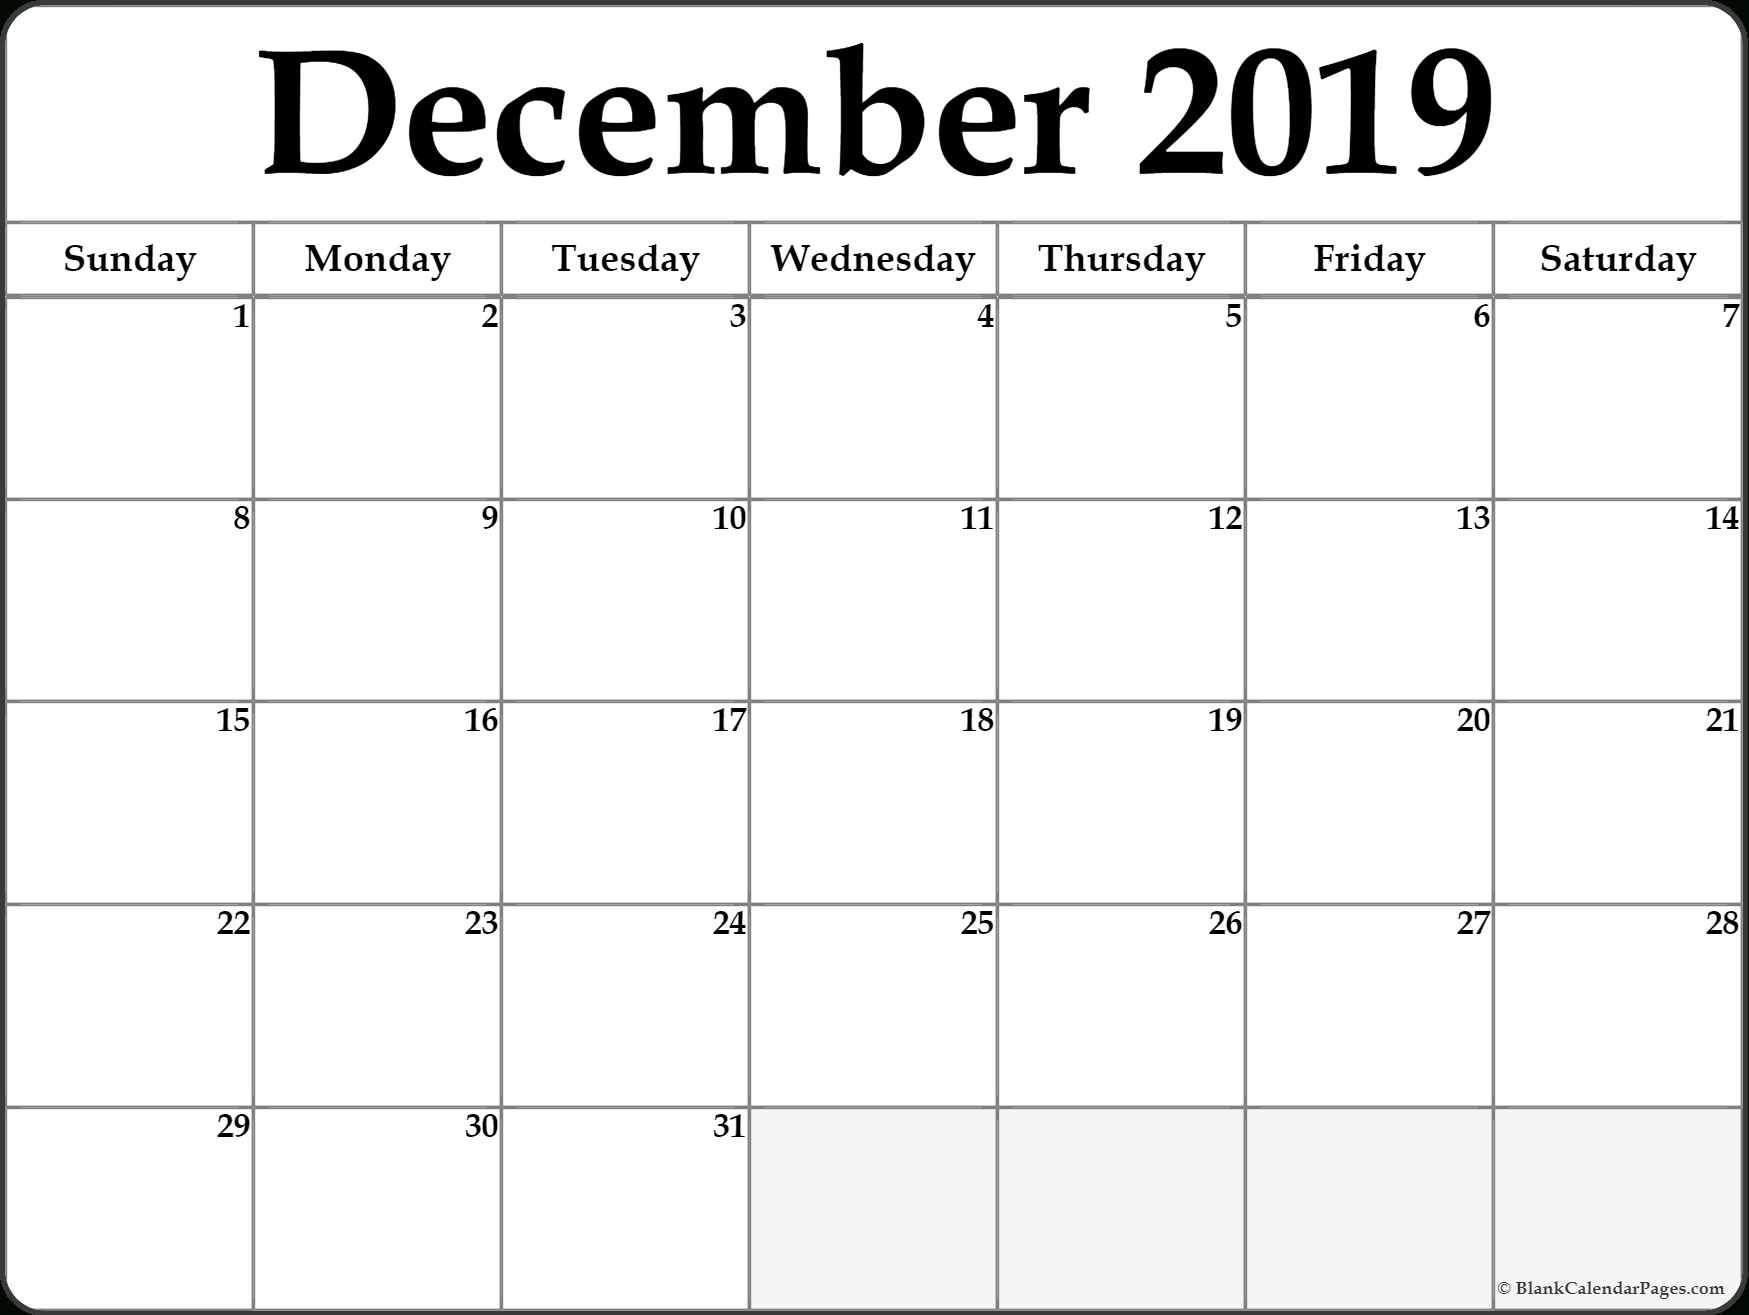 Depo Provera Perpetual Calendar 2019 Printable – Template Print Free Calendars Without Downloading 2018